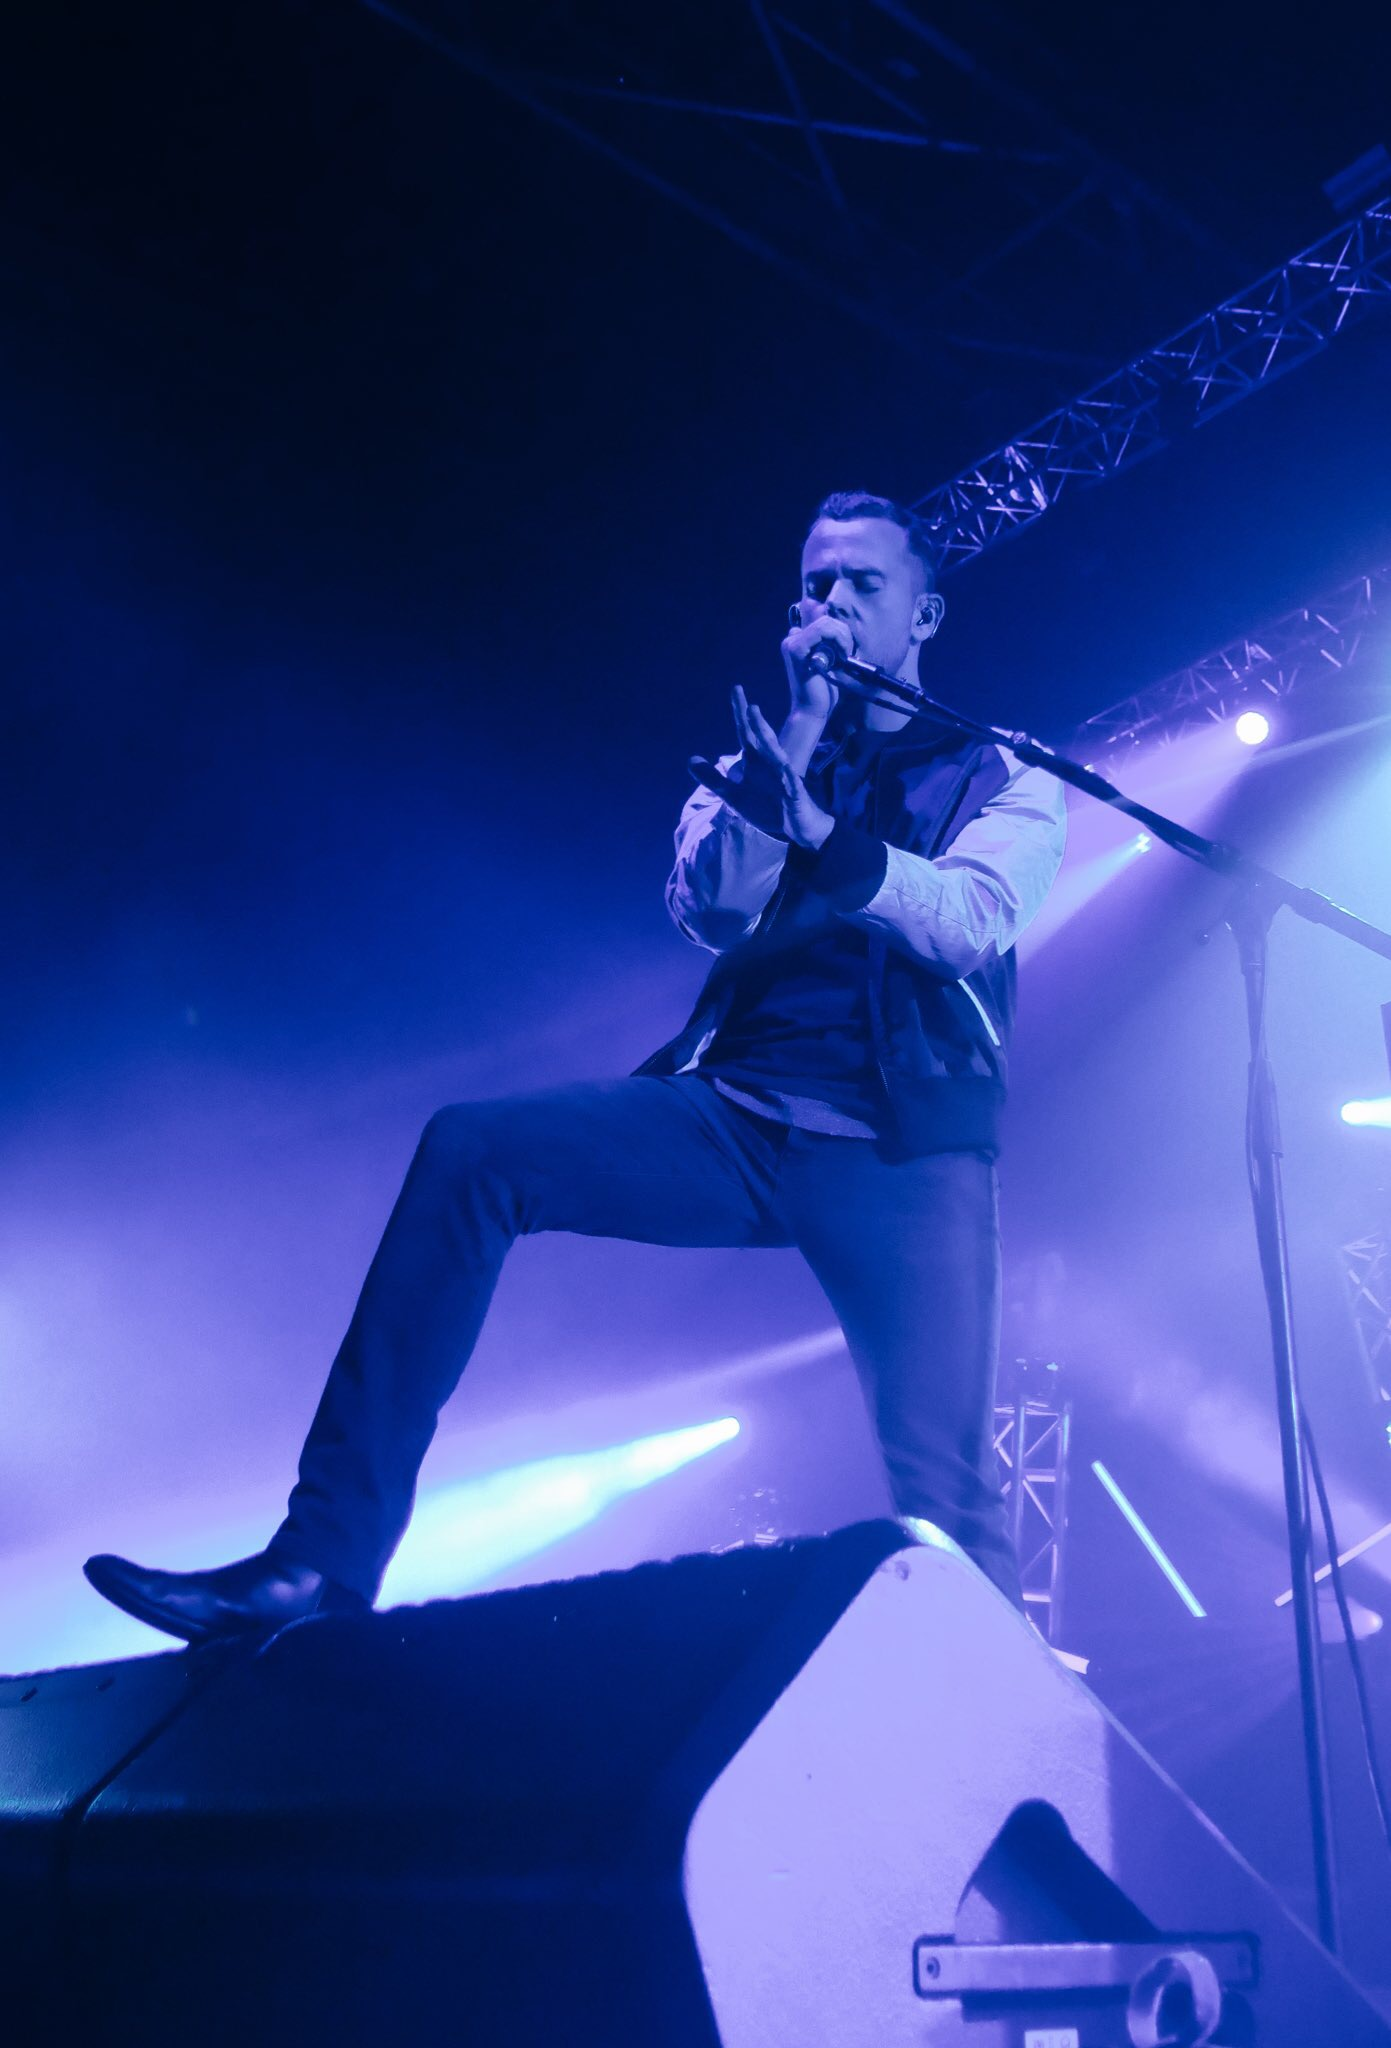 m83-anthony-gonzalez-junk-tour-concert-zenith-paris-stage-photo-usofparis-blog